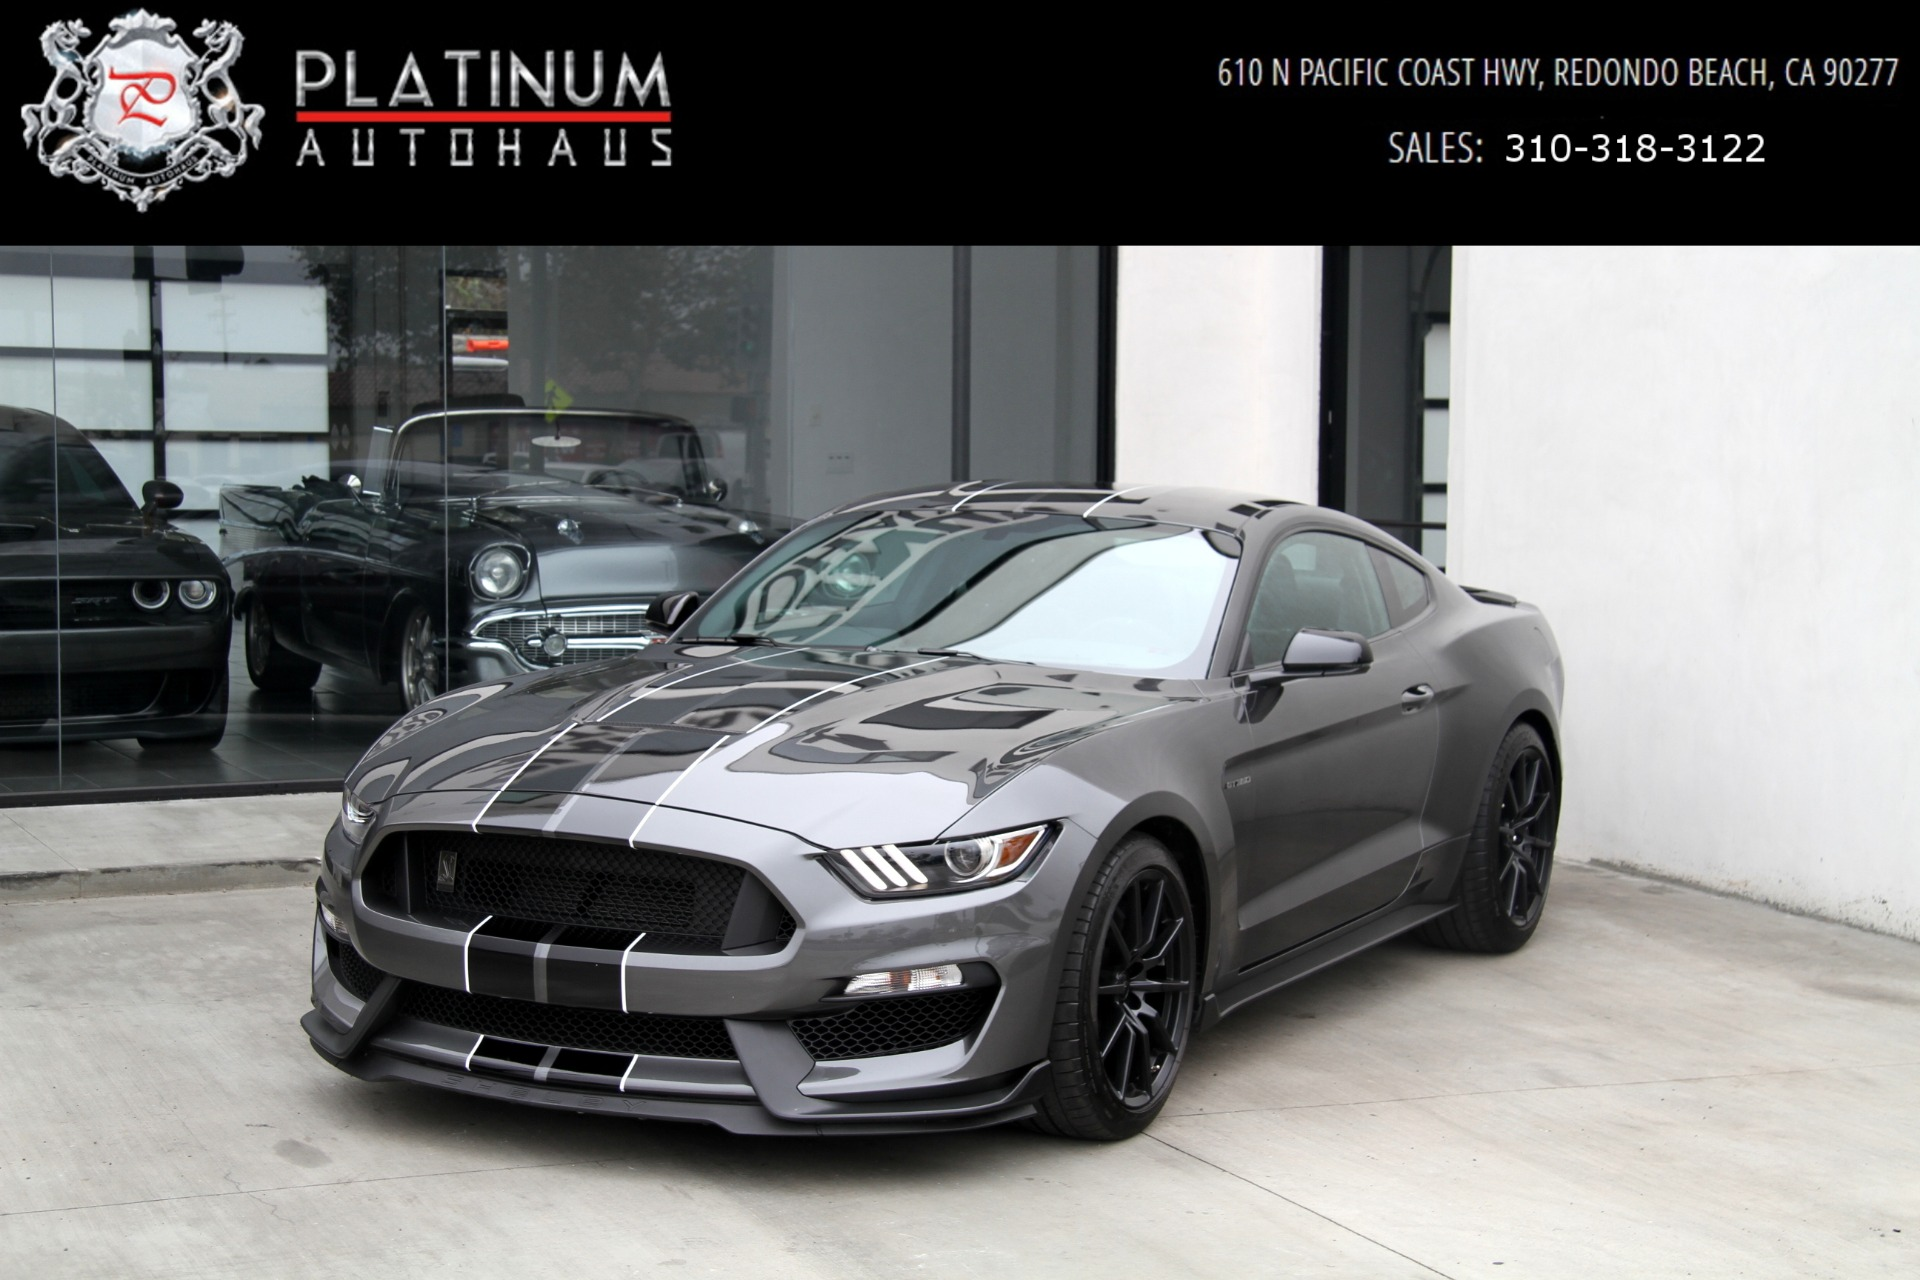 Mustang Gt For Sale Near Me >> 2016 Ford Mustang Shelby GT350 Stock # 6284A for sale near ...